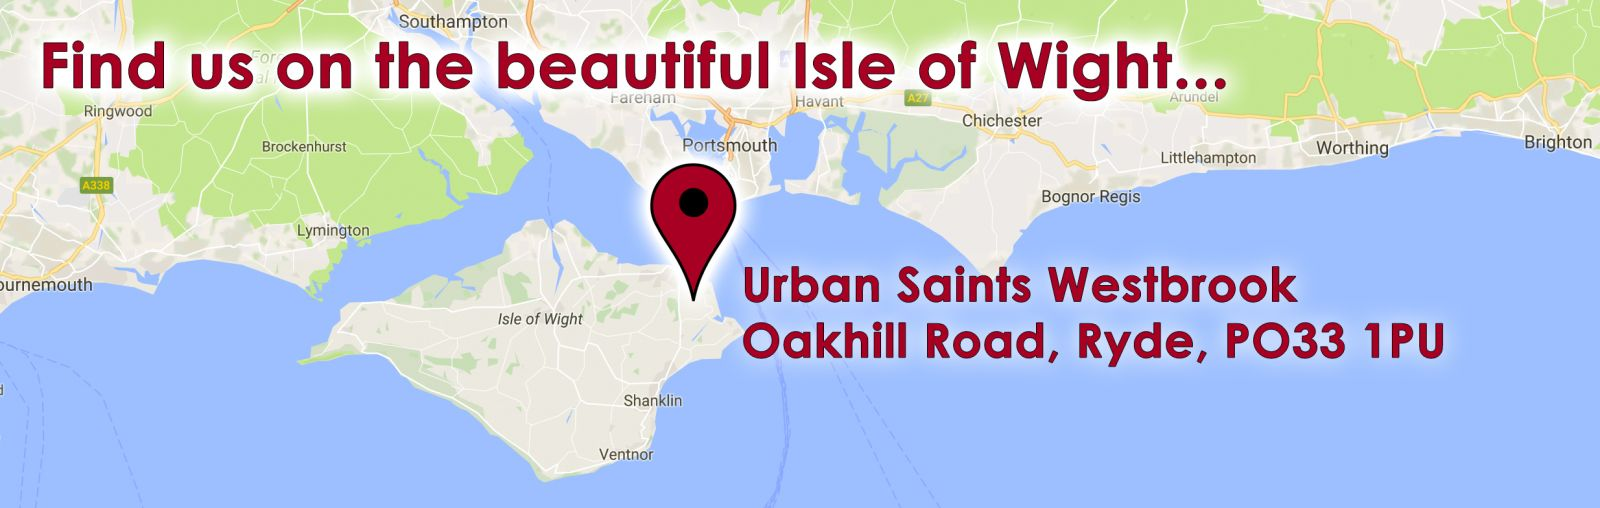 Urban Saints - Westbrook, Oakhill Road, Ryde, Isle of Wight, PO33 1PU